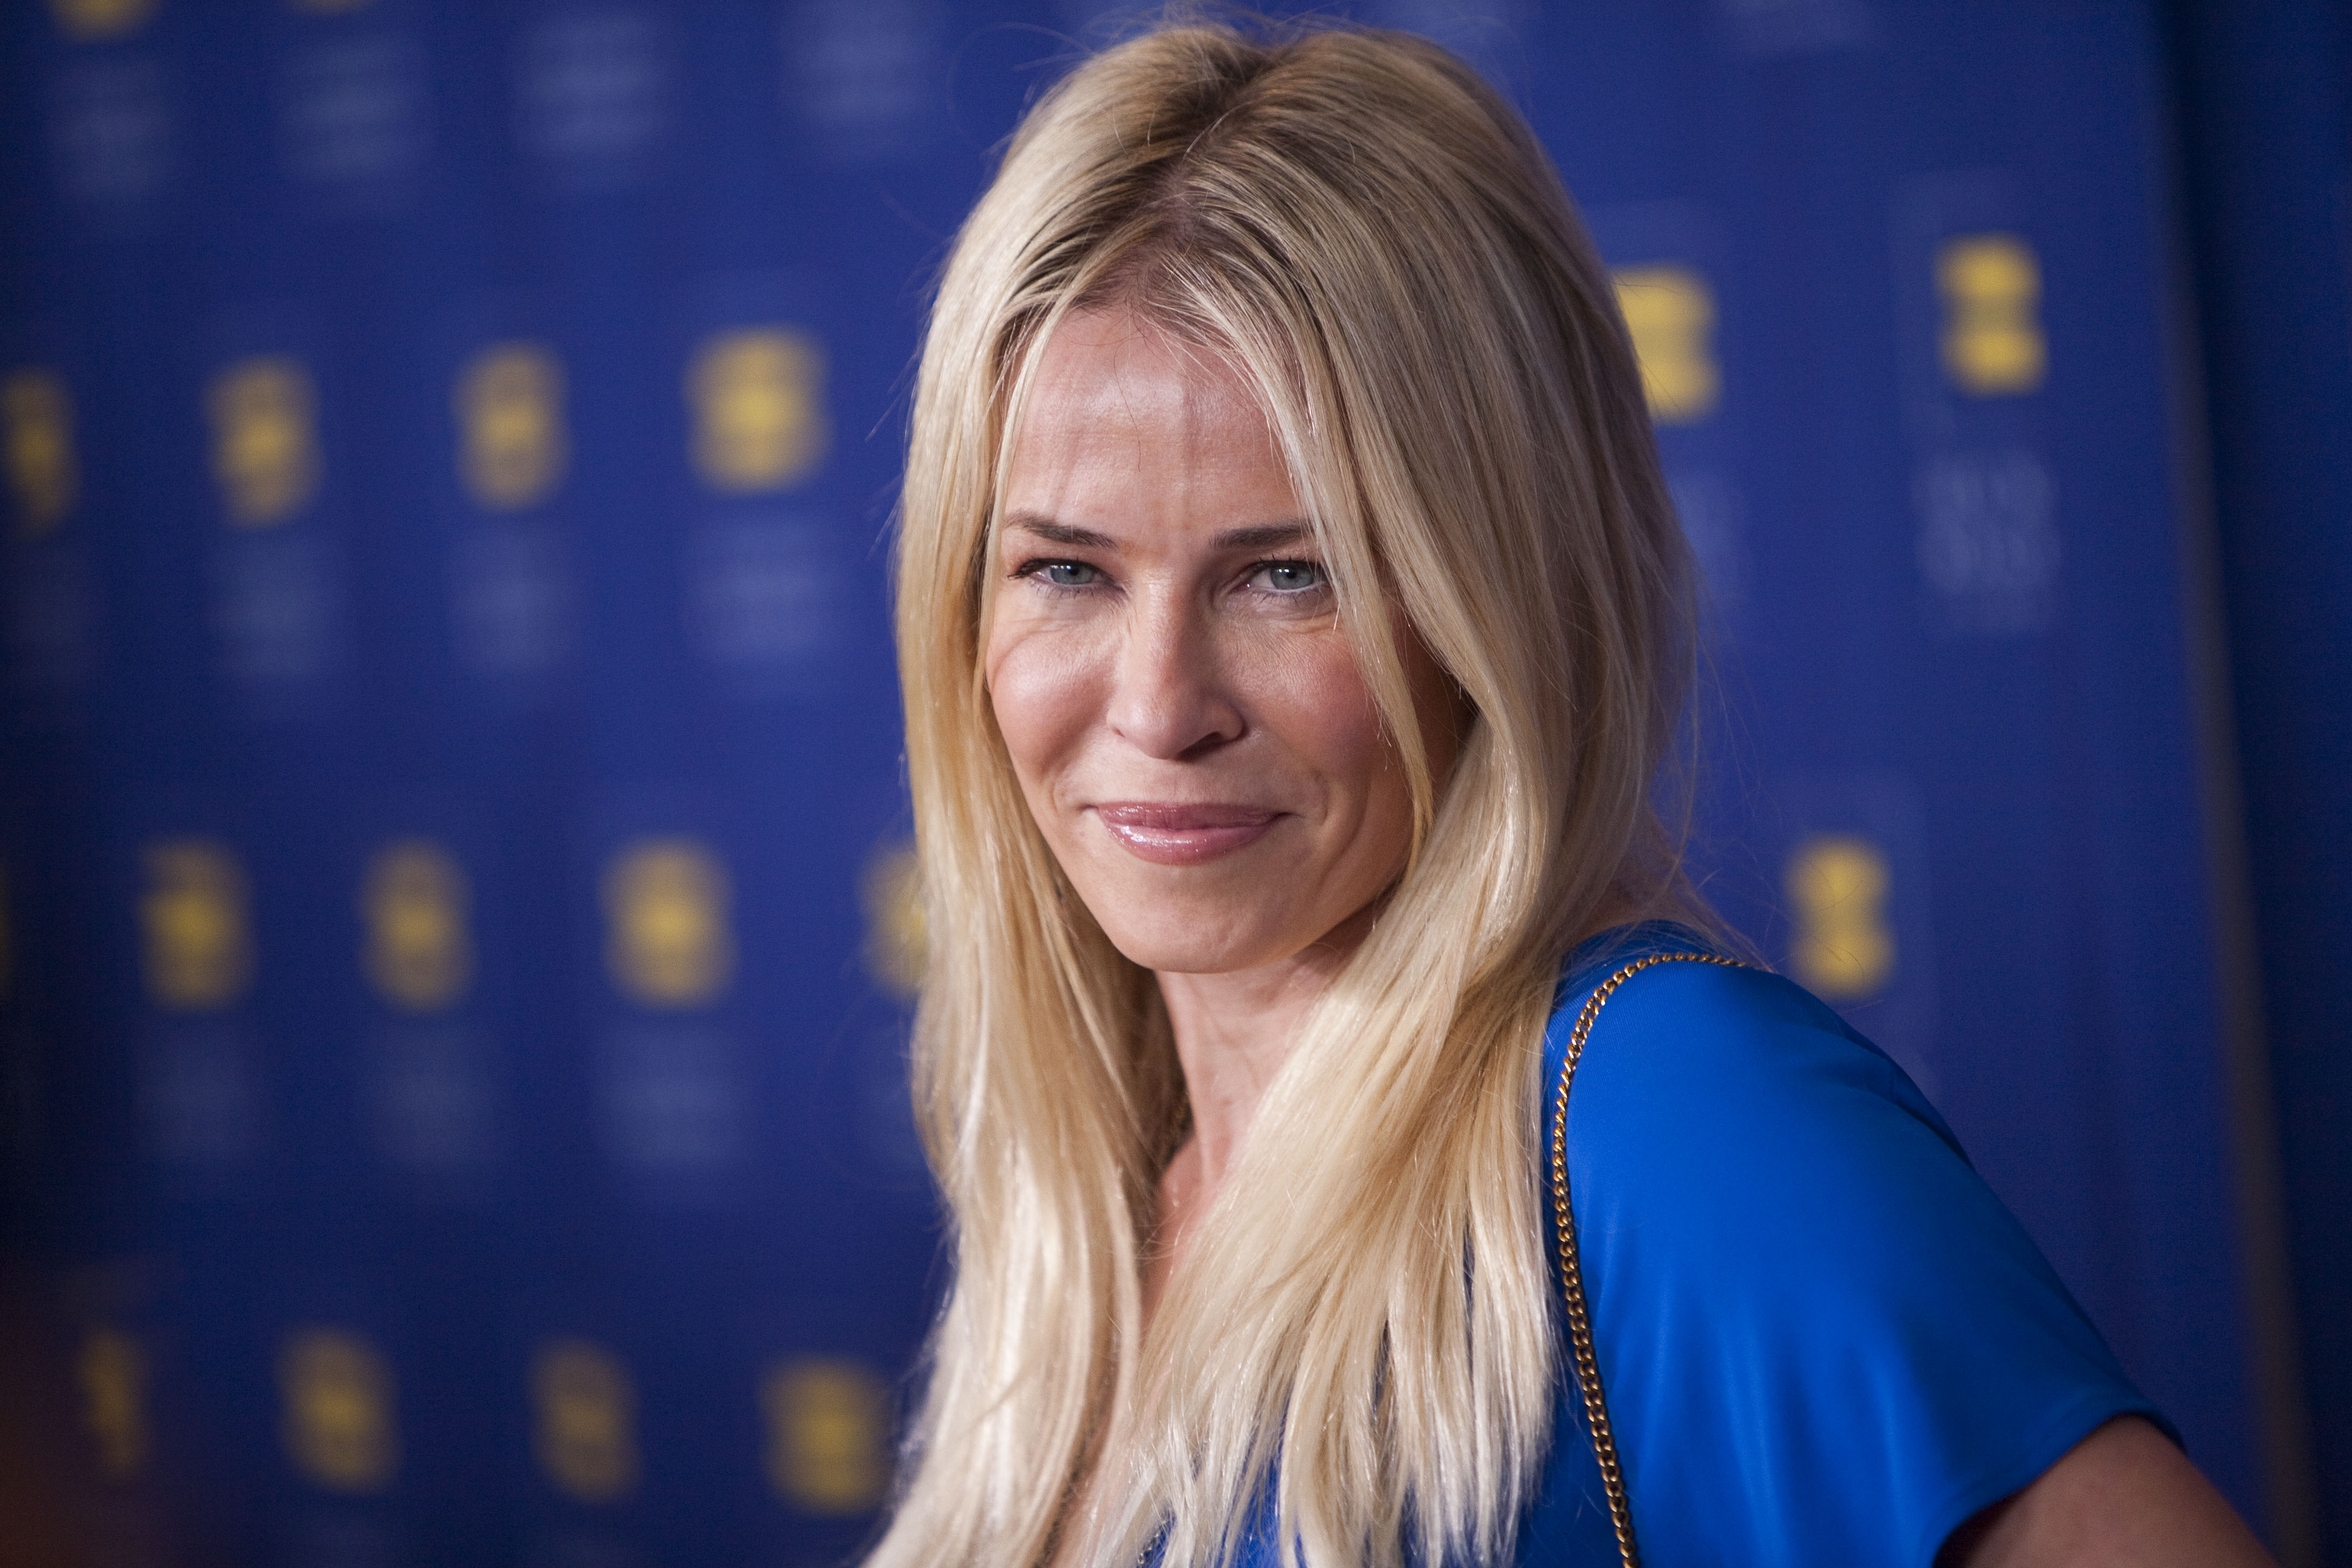 Chelsea Handler arrives to the 2012 Huma